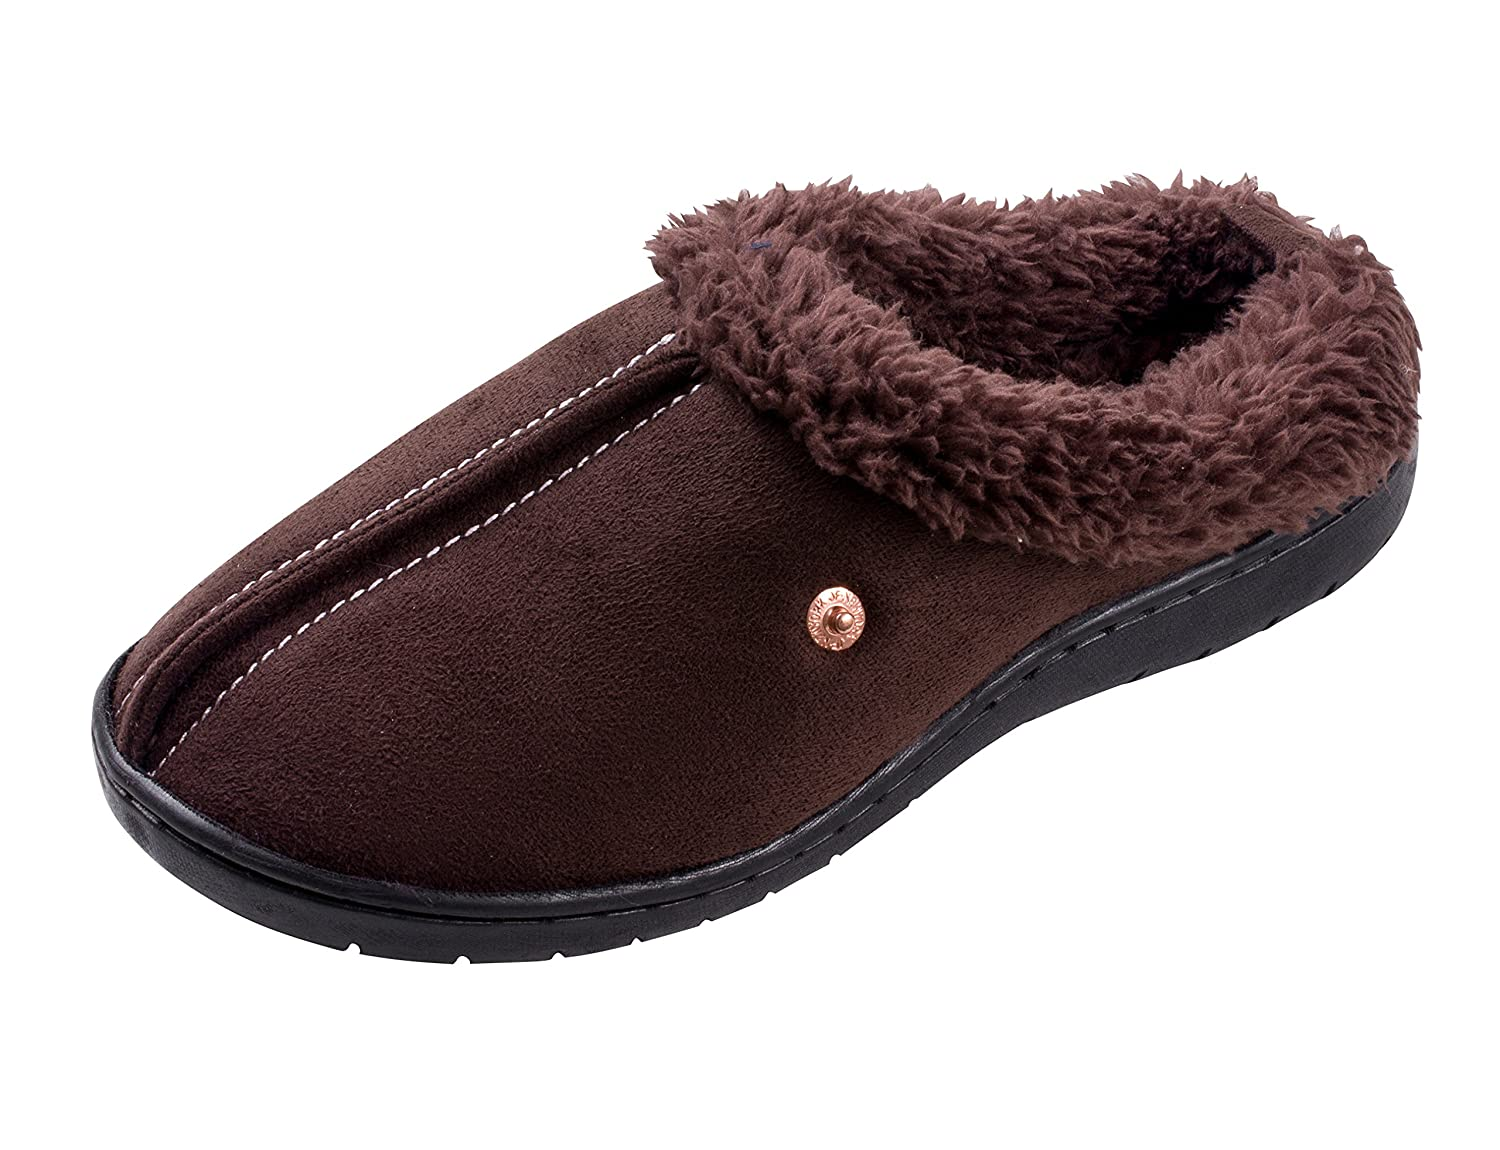 Beyond boys Boys Stitched Faux Suede, Fleece Lined Clog Slippers